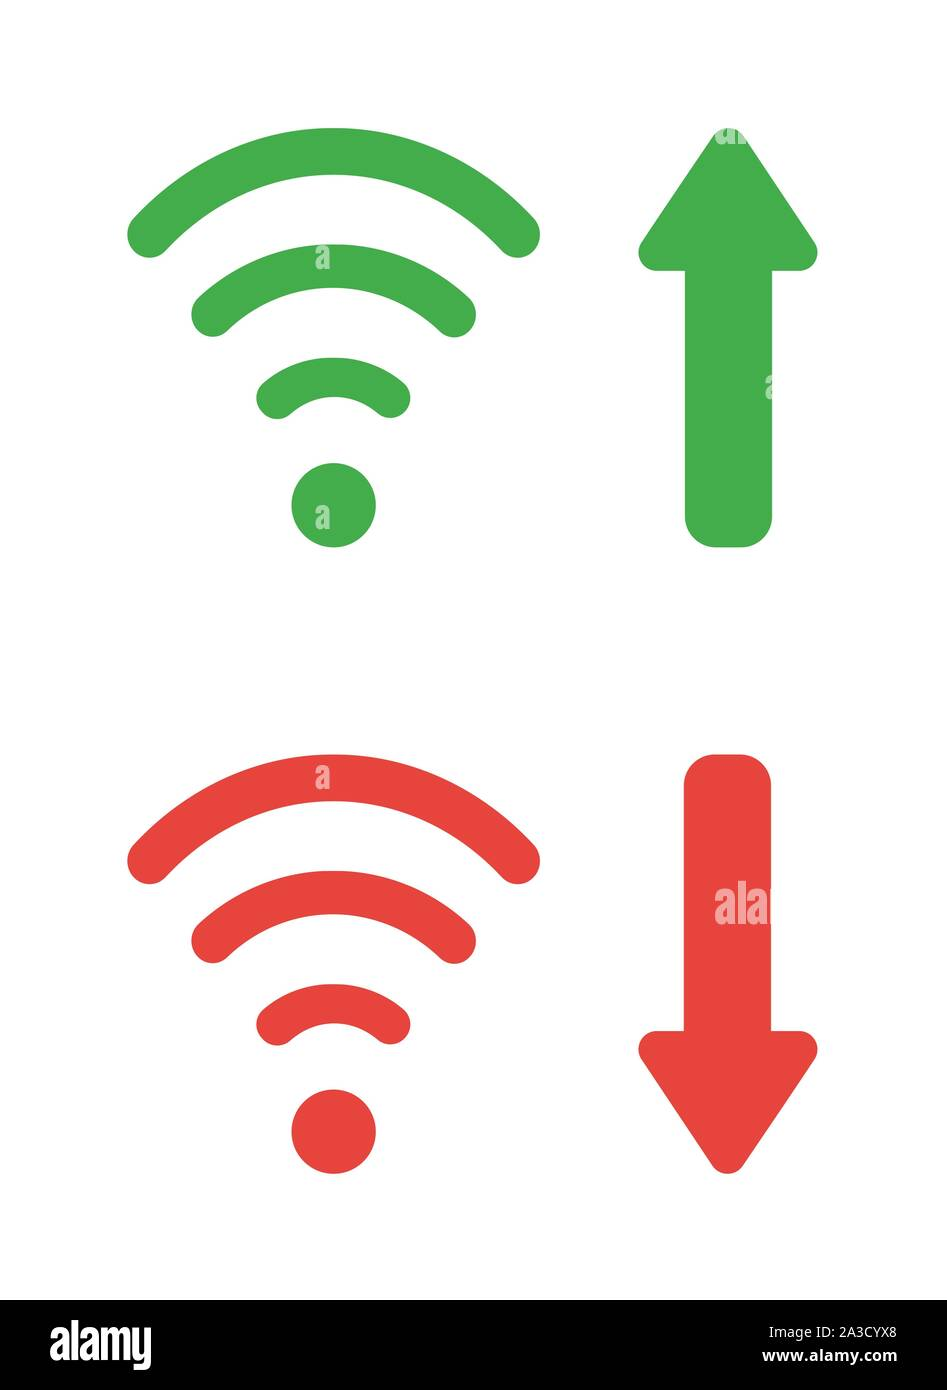 Vector Icon Set Of Wireless Wifi Symbols With Arrow Moving Up And Down Flat Color Style Stock Vector Image Art Alamy Search more hd transparent wifi symbol image on kindpng. https www alamy com vector icon set of wireless wifi symbols with arrow moving up and down flat color style image329126288 html